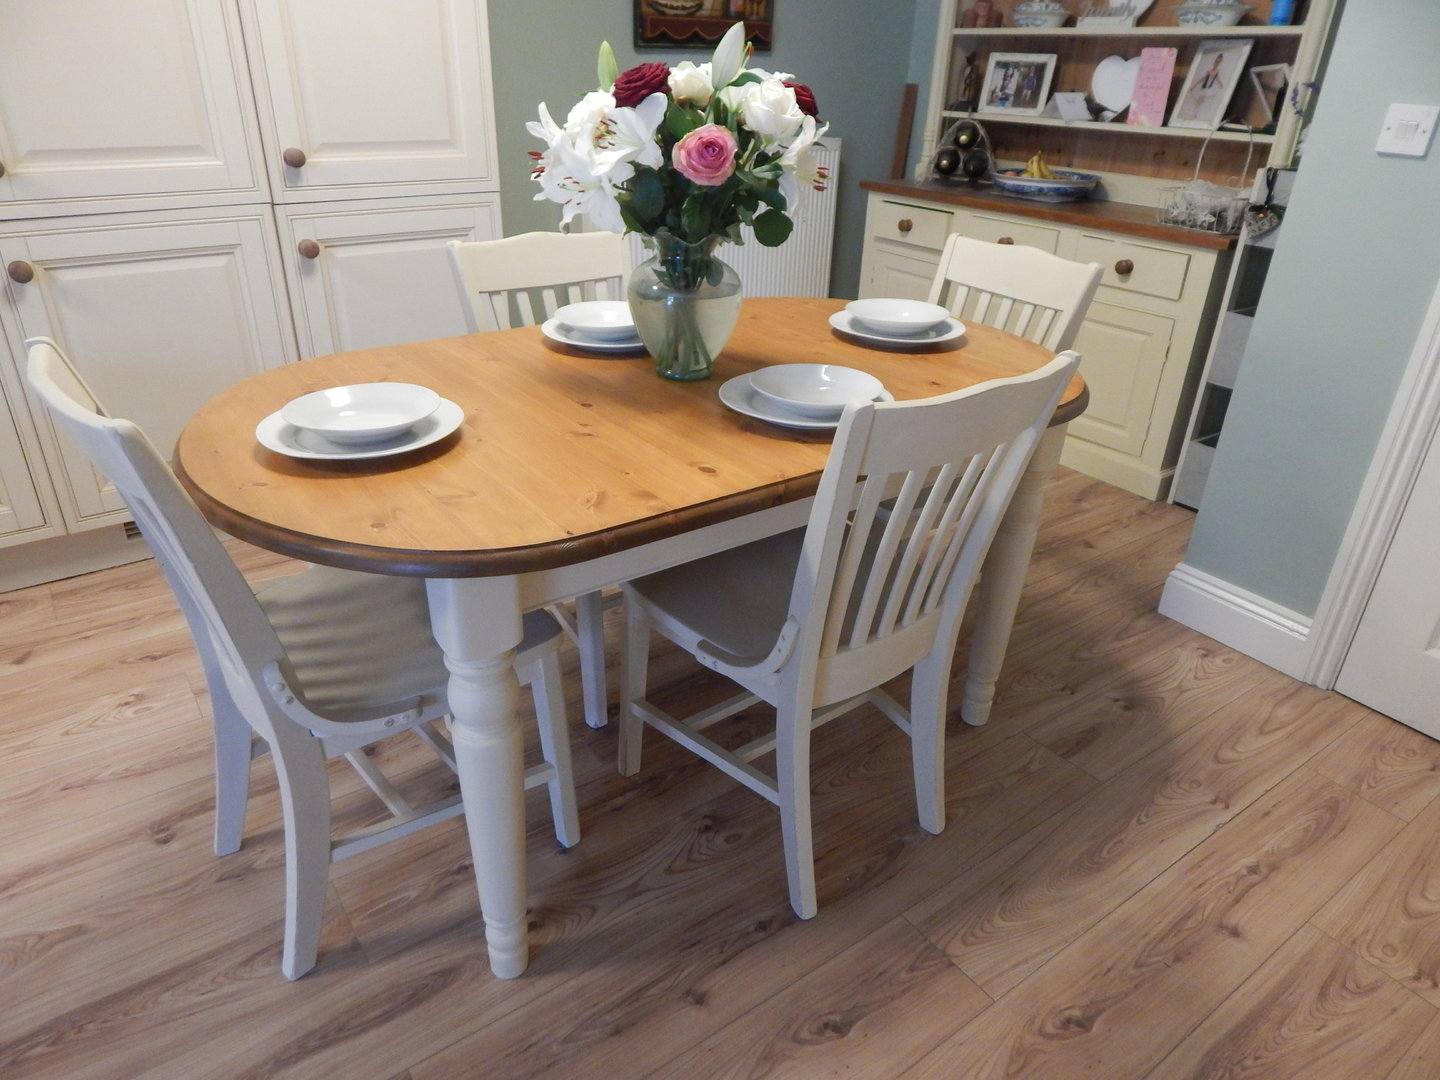 Shabby Chic Breakfast Table: SHABBY CHIC , DUCAL PINE EXTENDING DINING TABLE & 6 CHAIRS